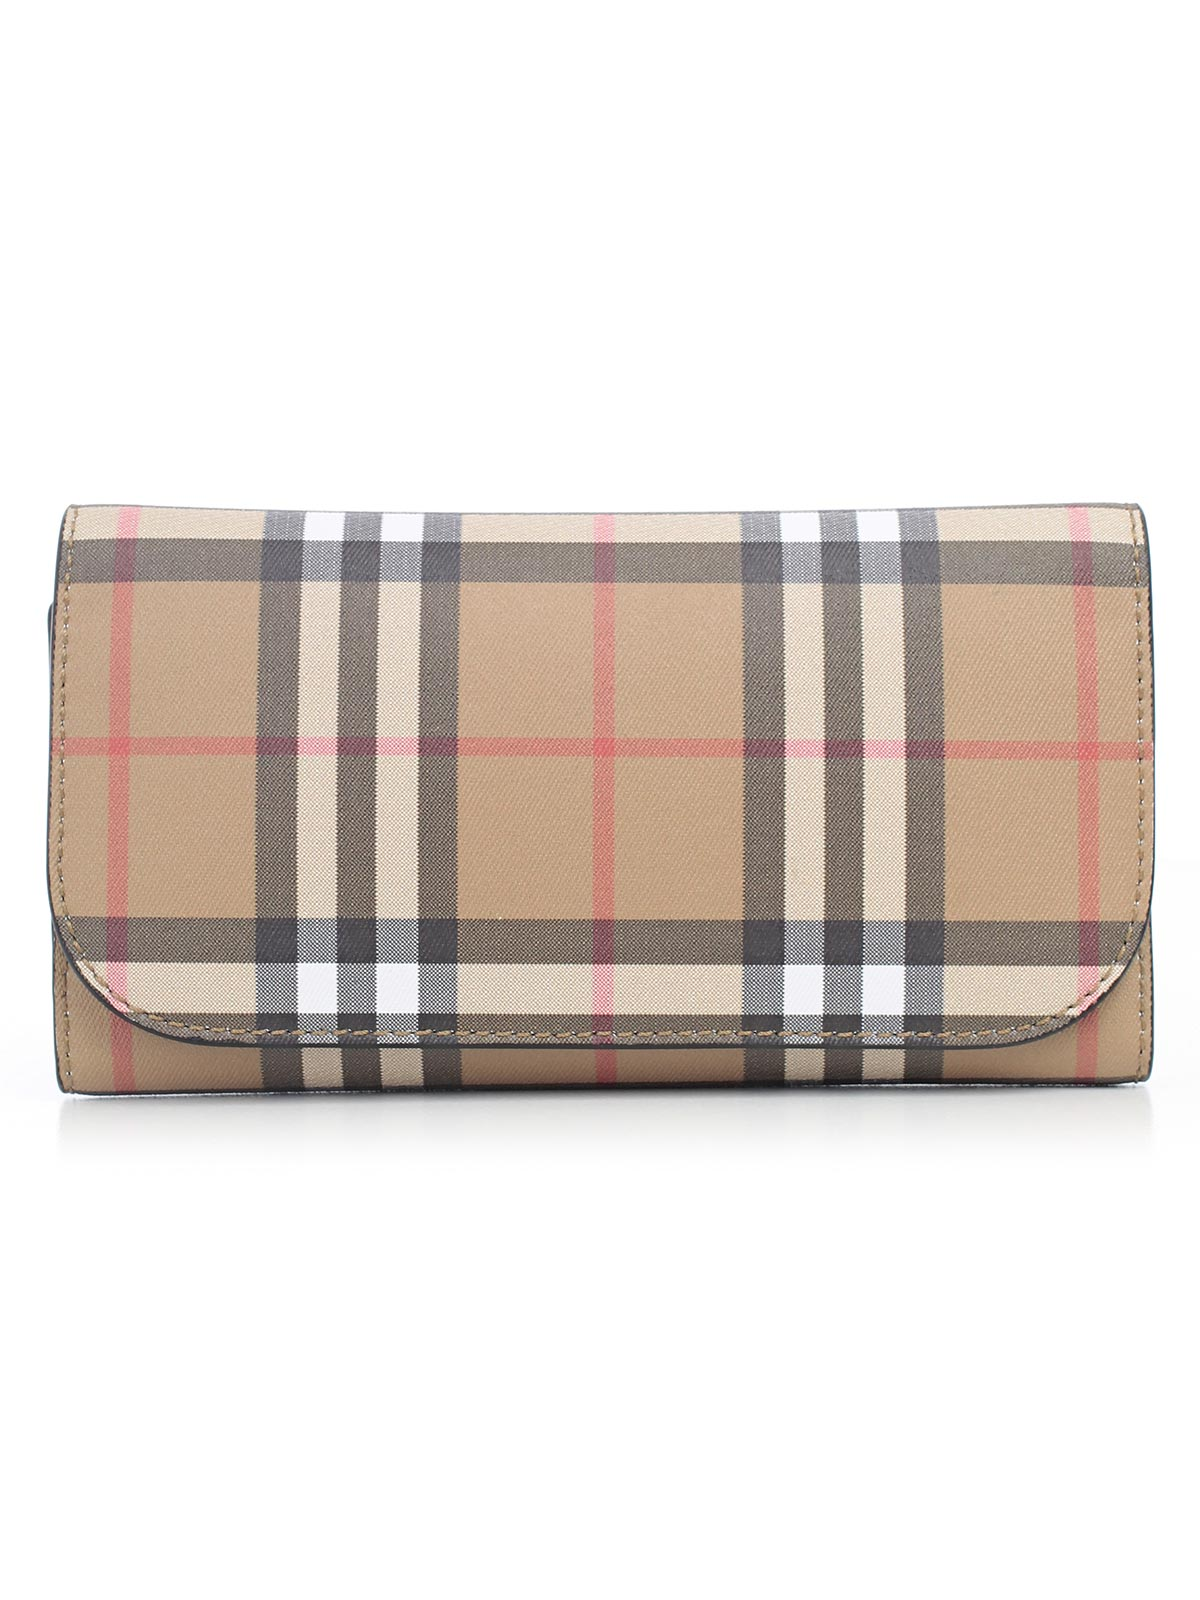 Picture of Burberry Wallets & Purses